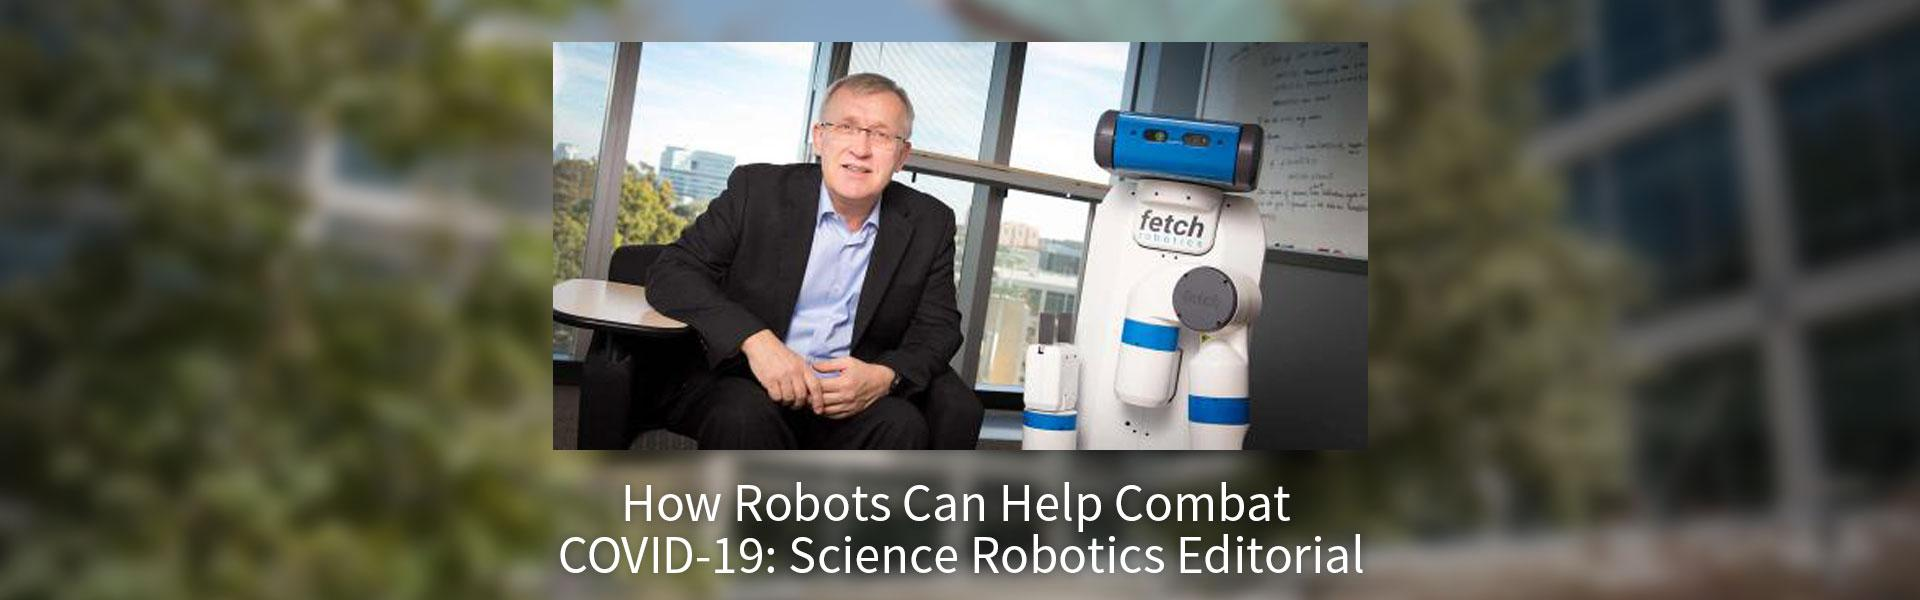 HOW ROBOTS CAN HELP COMBAT COVID-19: SCIENCE ROBOTICS EDITORIAL